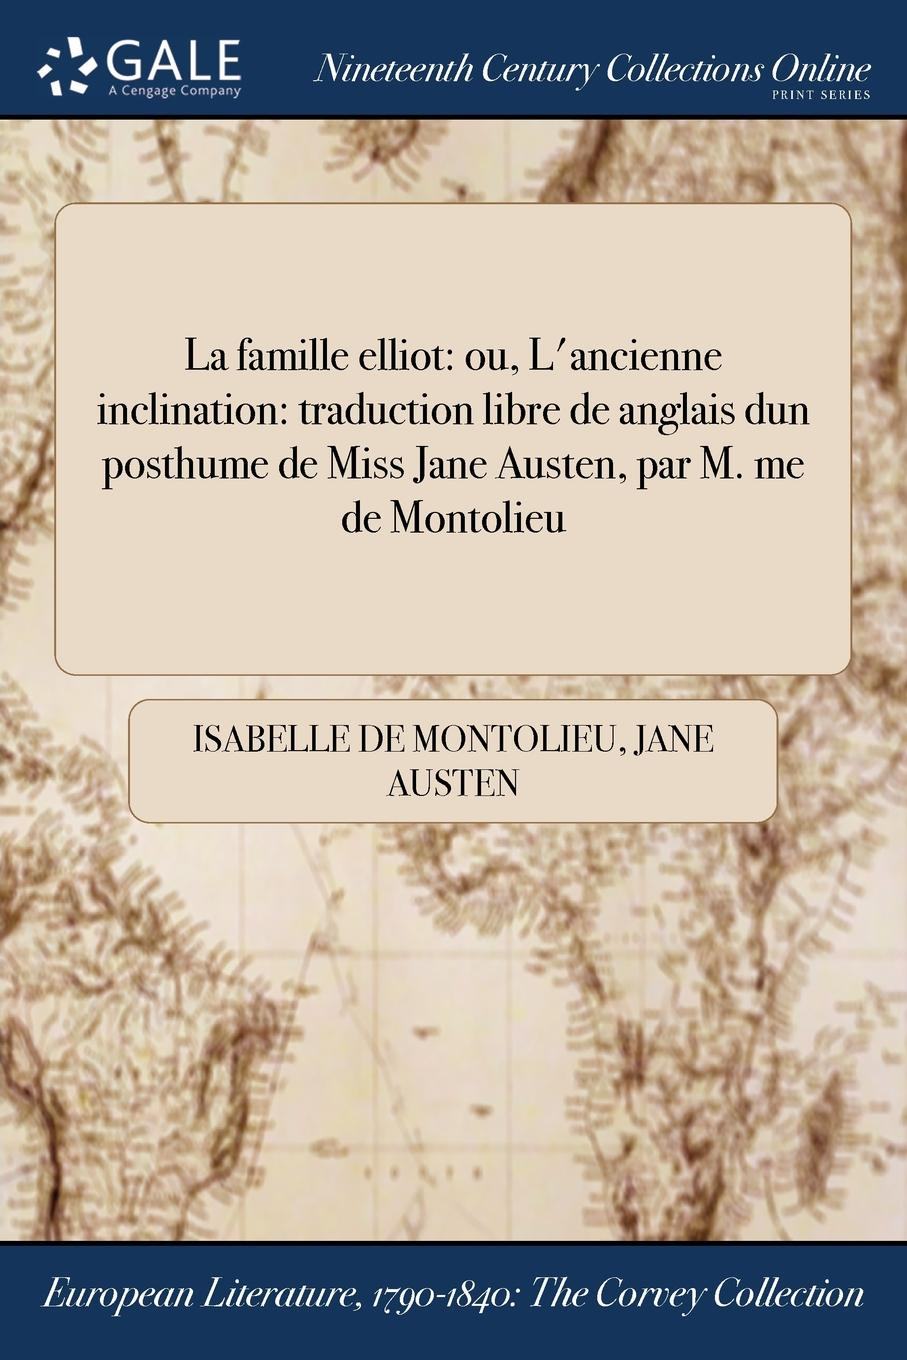 Isabelle de Montolieu, Jane Austen La famille elliot. ou, L.ancienne inclination: traduction libre de langlais dun posthume de Miss Jane Austen, par M. me de Montolieu jane austen the novels the text based on collation of the early editions by r w chapman with notes indexes and illus from contemporary sources